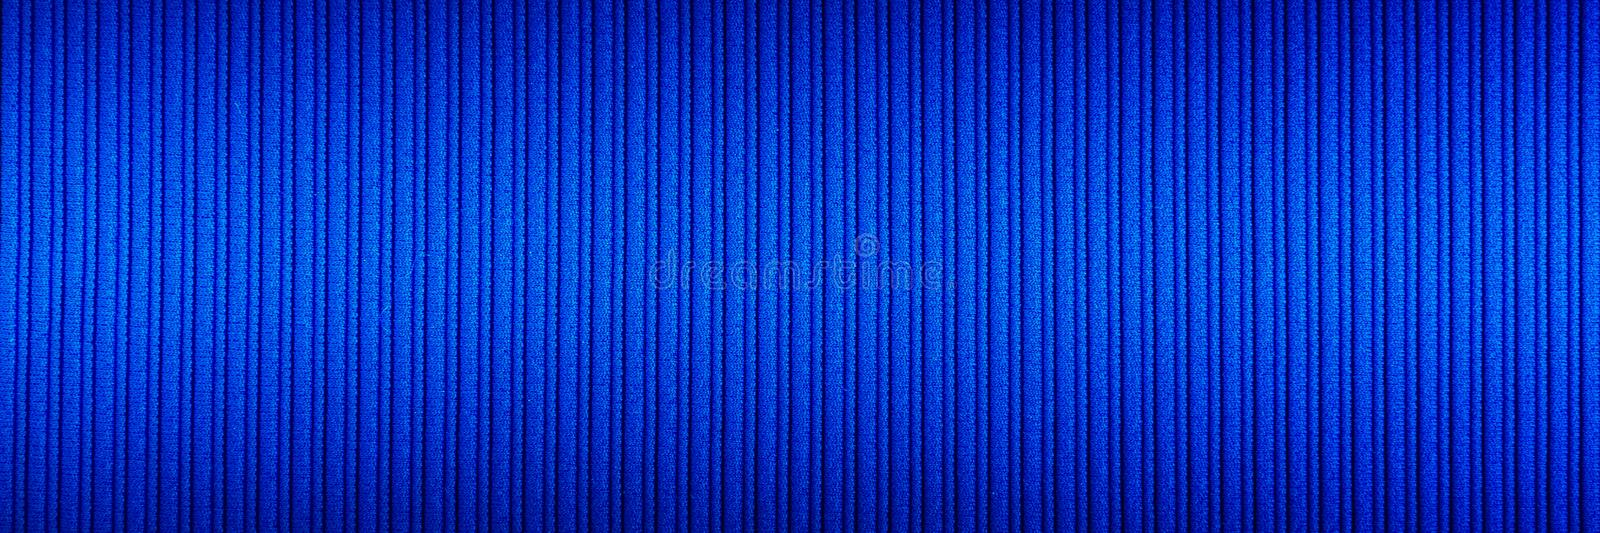 Cor azul do fundo decorativo, inclina??o superior e mais baixo da textura listrada wallpaper Arte Projeto foto de stock royalty free